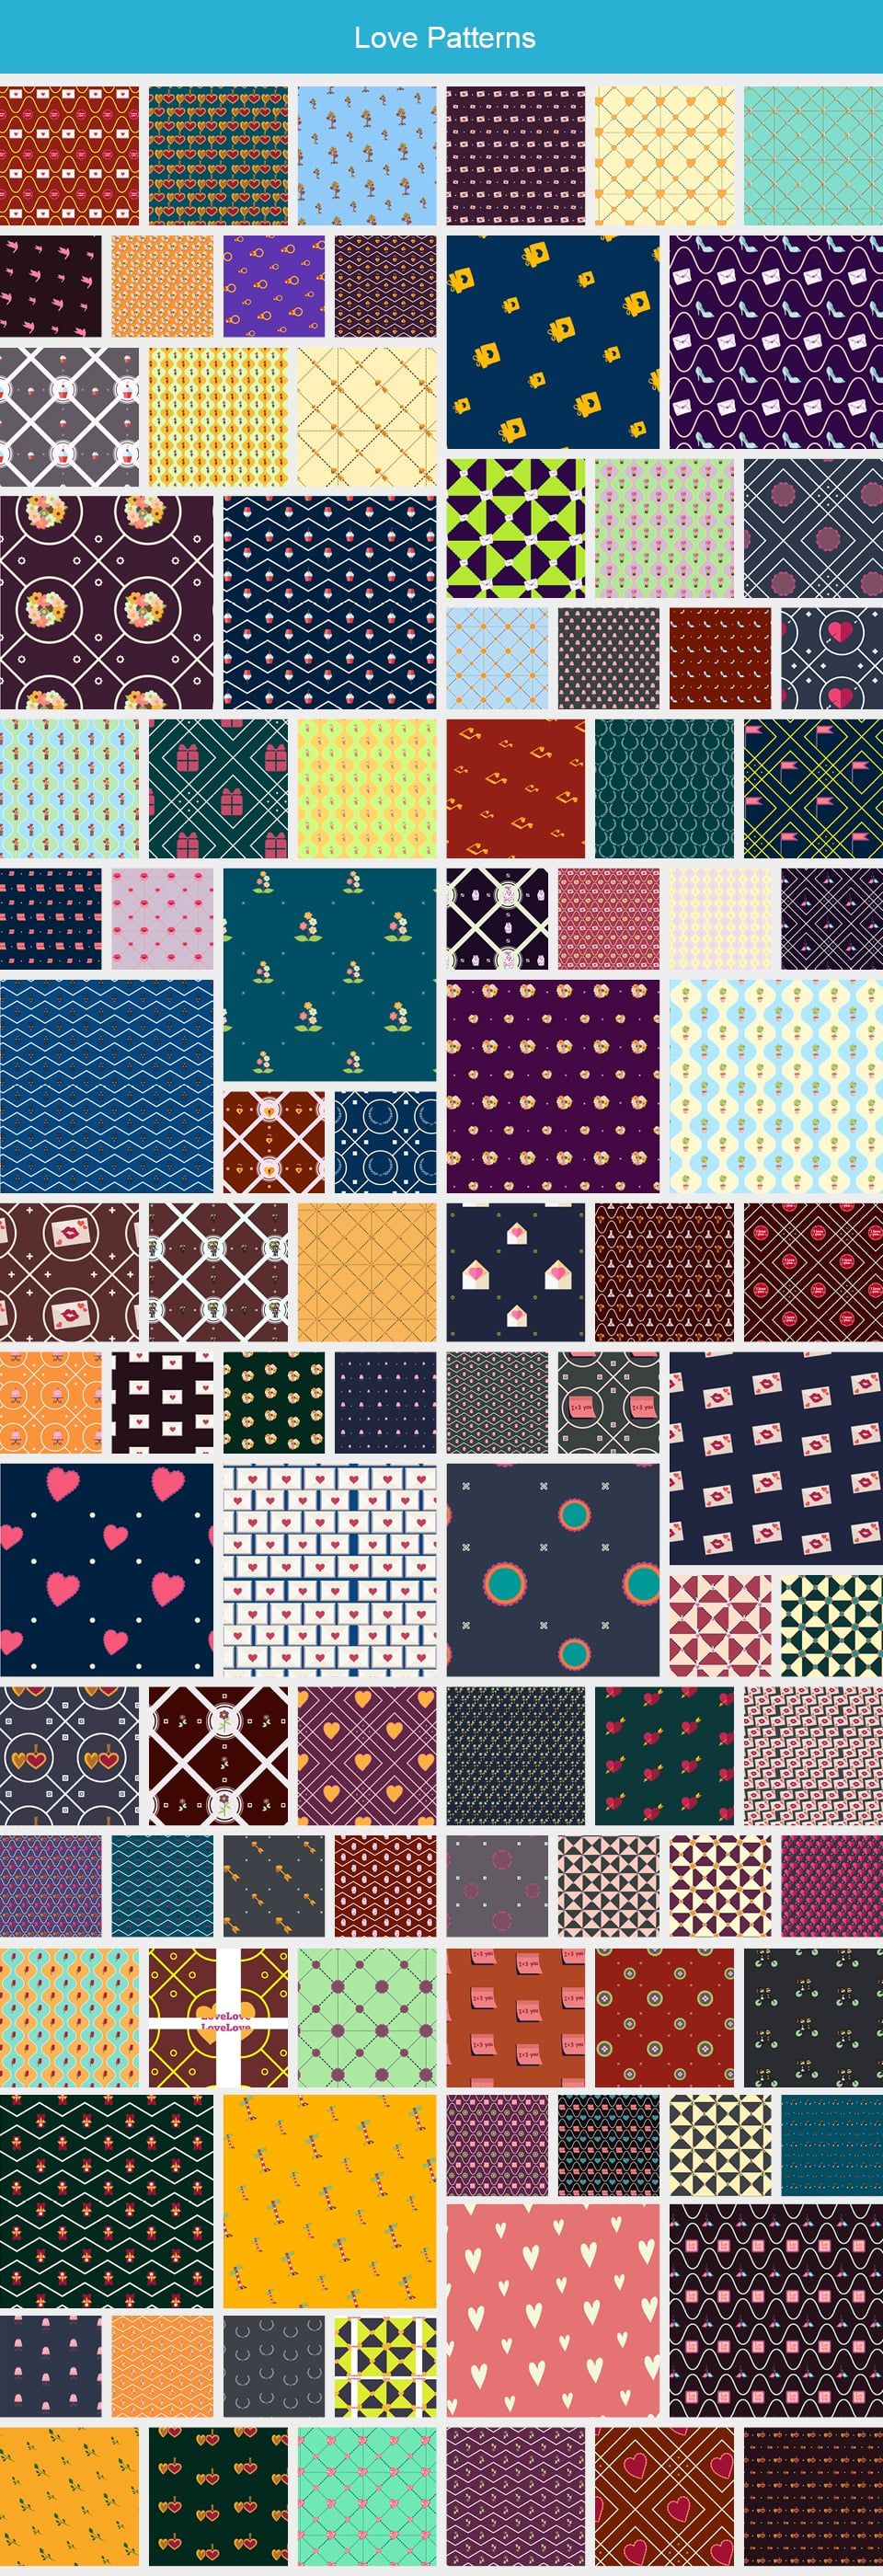 Modern Pattern Designs - Mega Bundle with 2000 Patterns - Large Preview Love